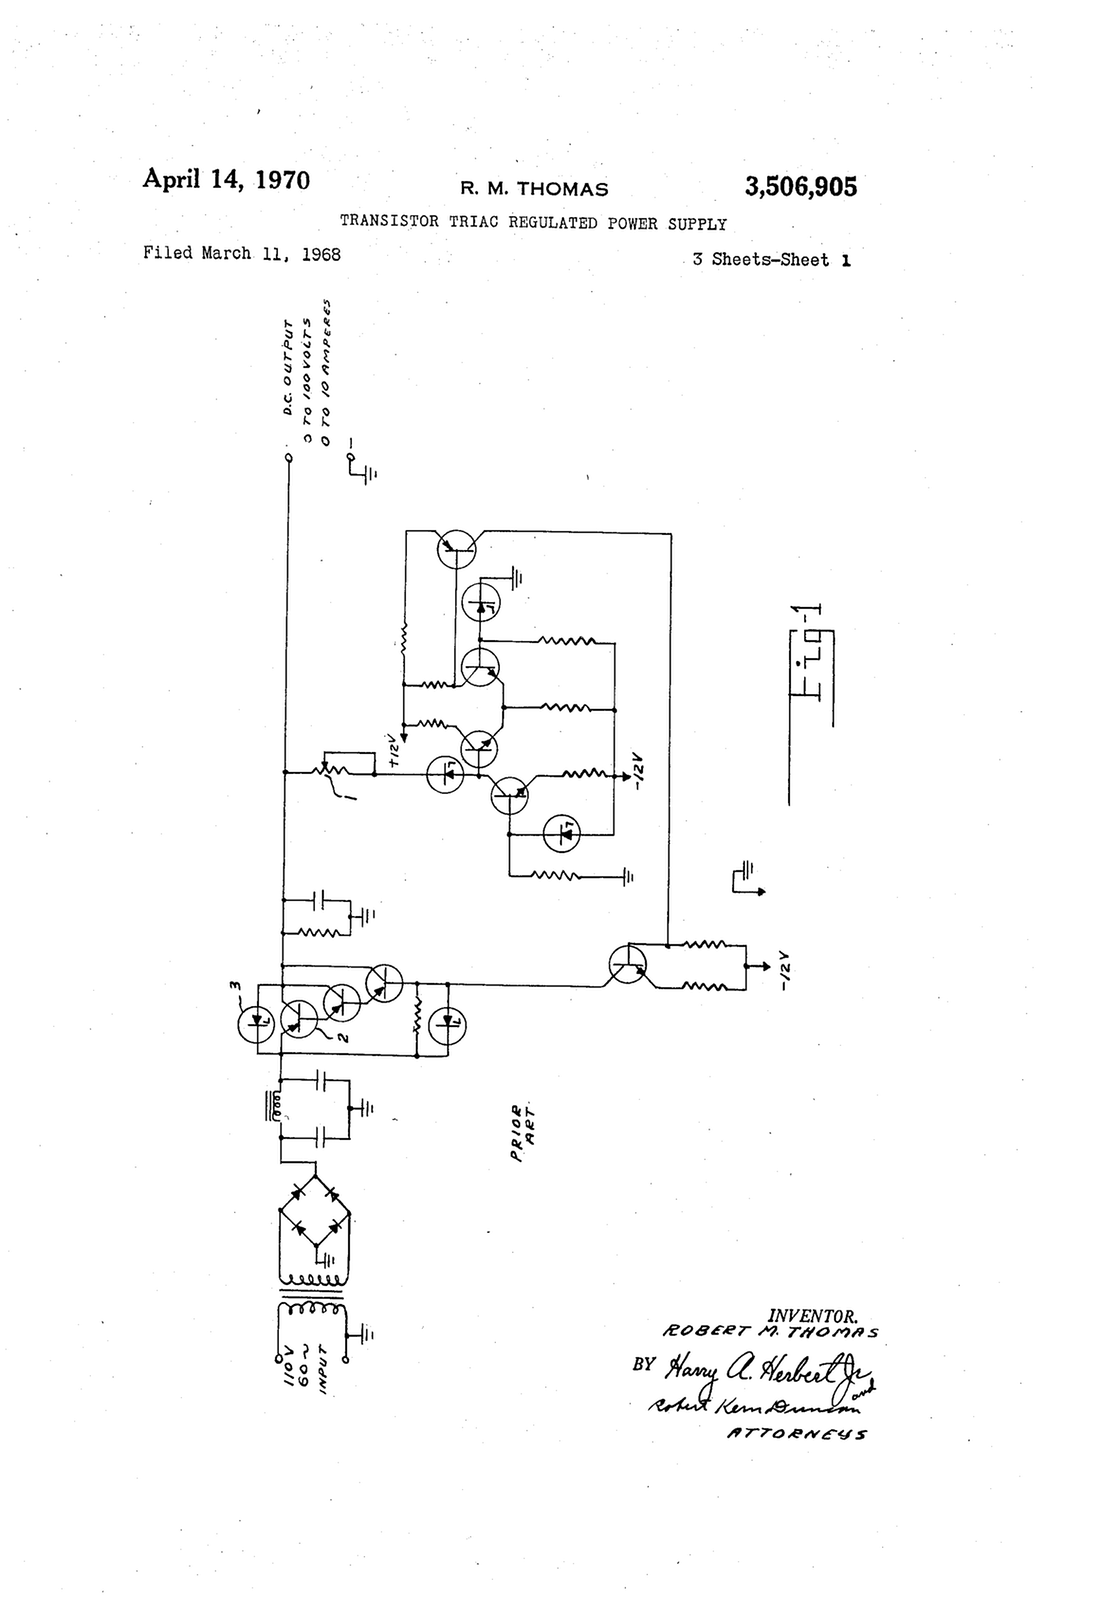 Power Supply Drawing At Free For Personal Use Triac Circuit Page 2 Other Circuits Nextgr 1100x1616 Patent Us3506905 Transistor Regulated